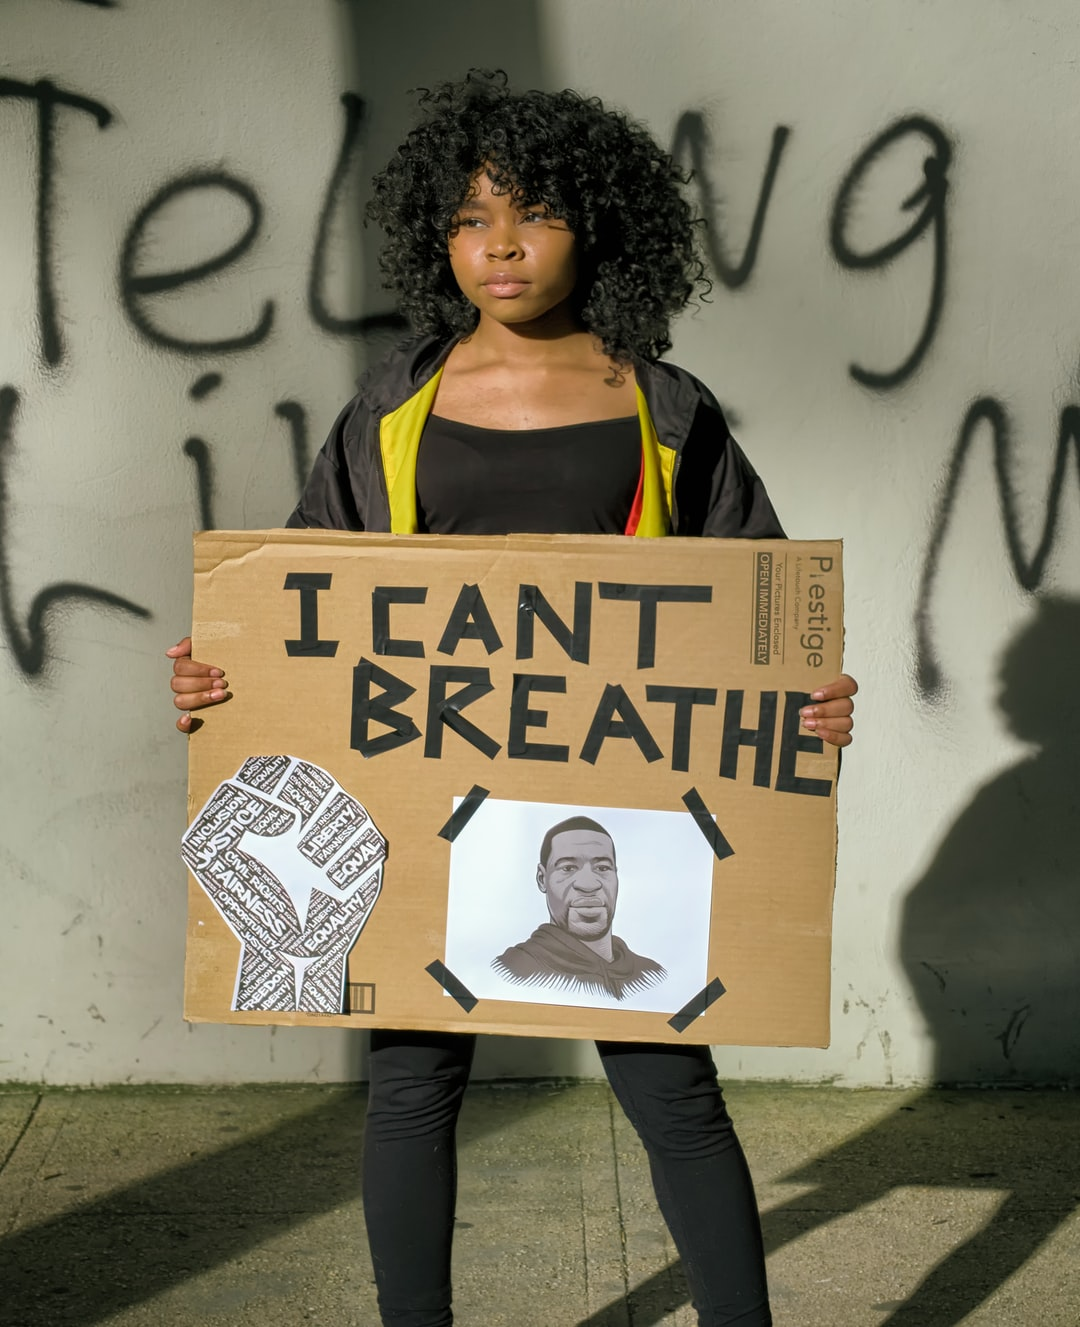 A protester in Washington DC holds a sign featuring George Floyd.